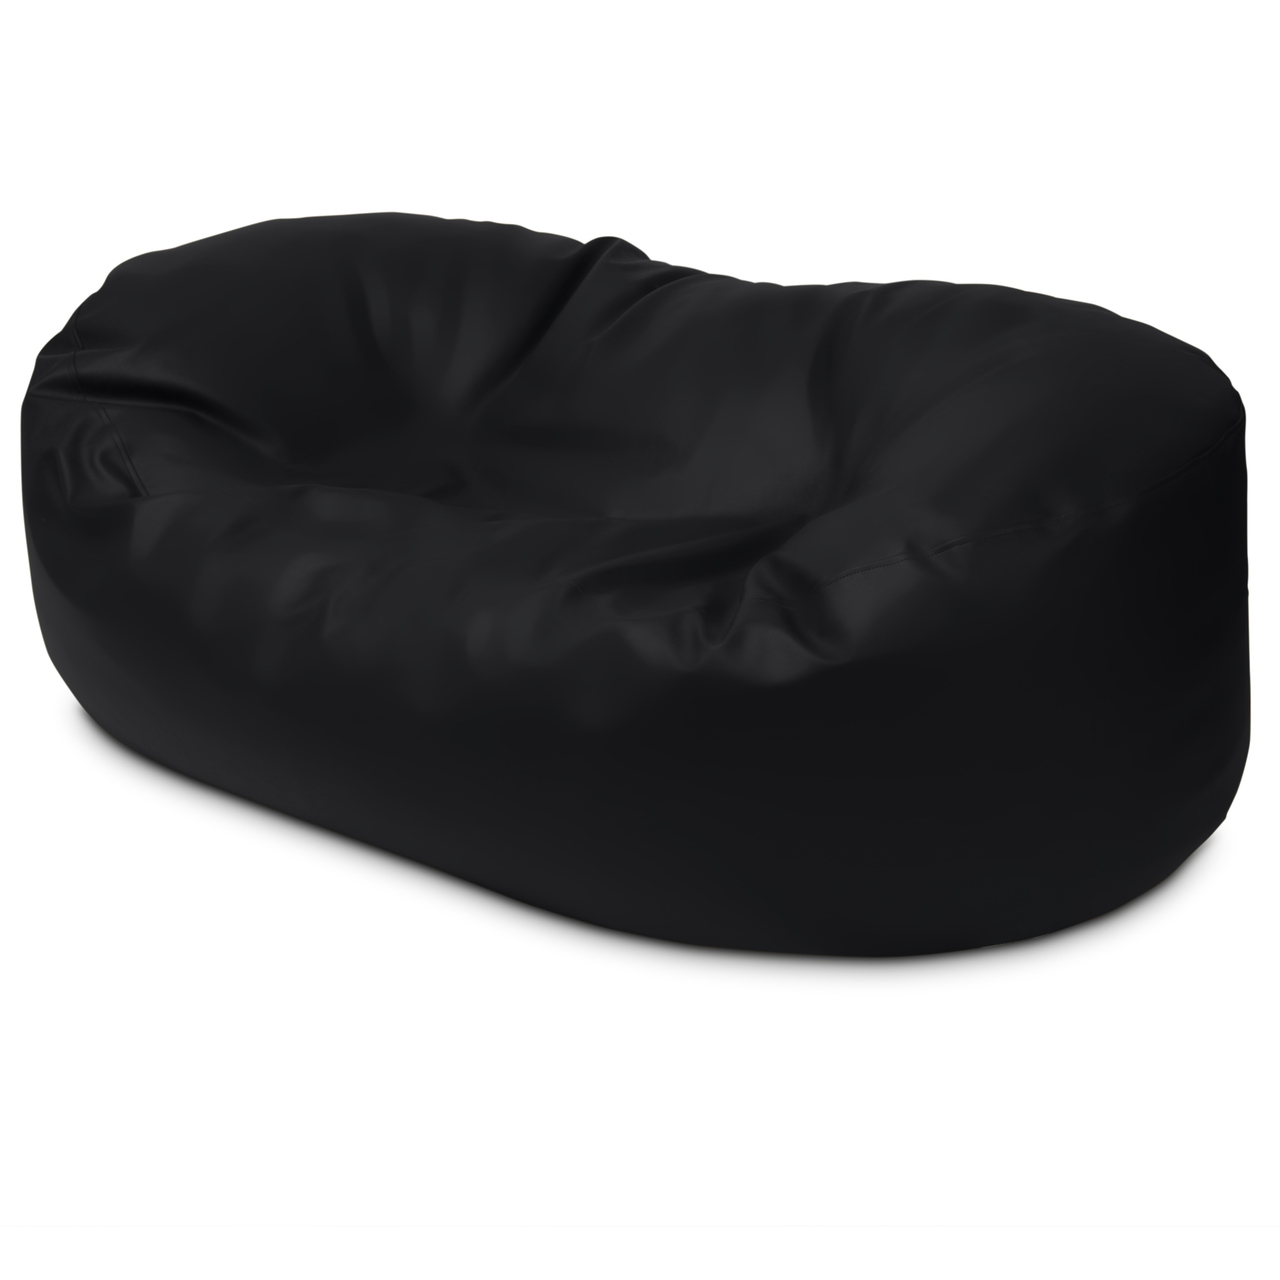 Classic 2m Couch in black